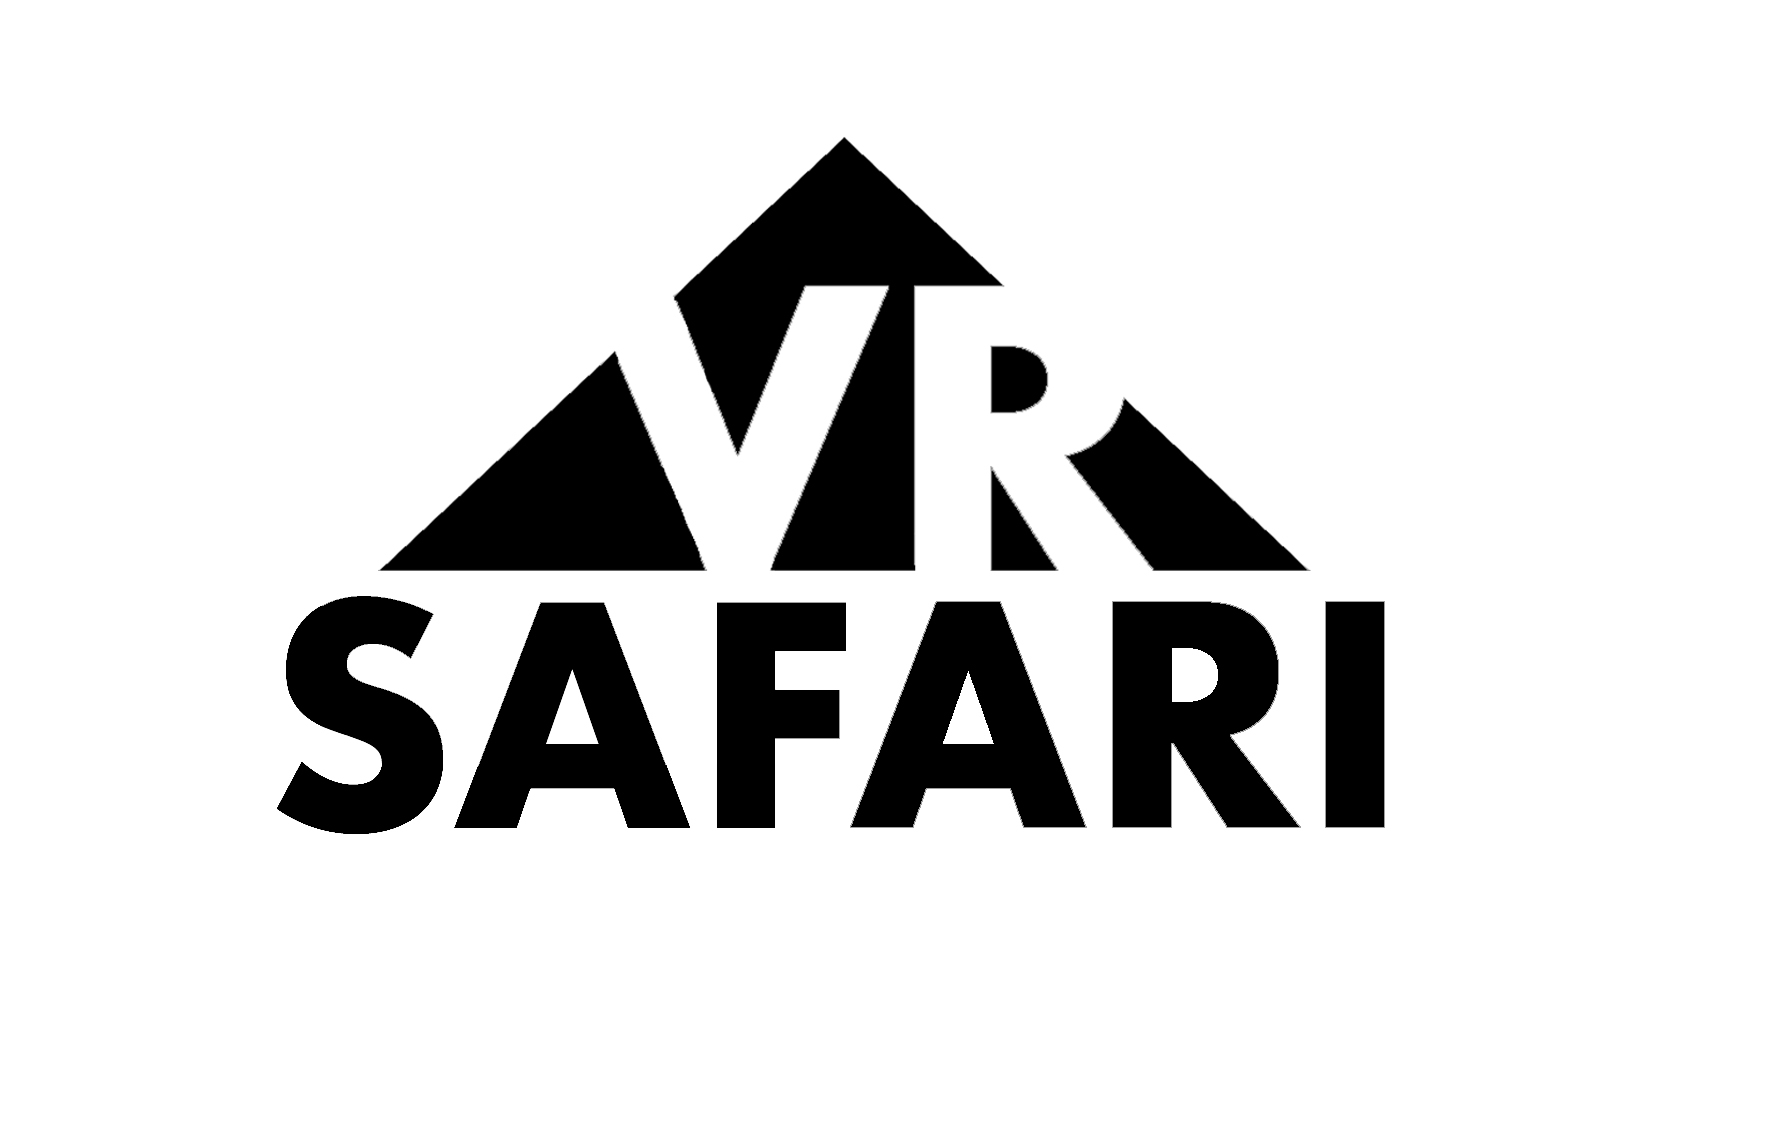 VR Safari Immersive Technology Workshops - square logo